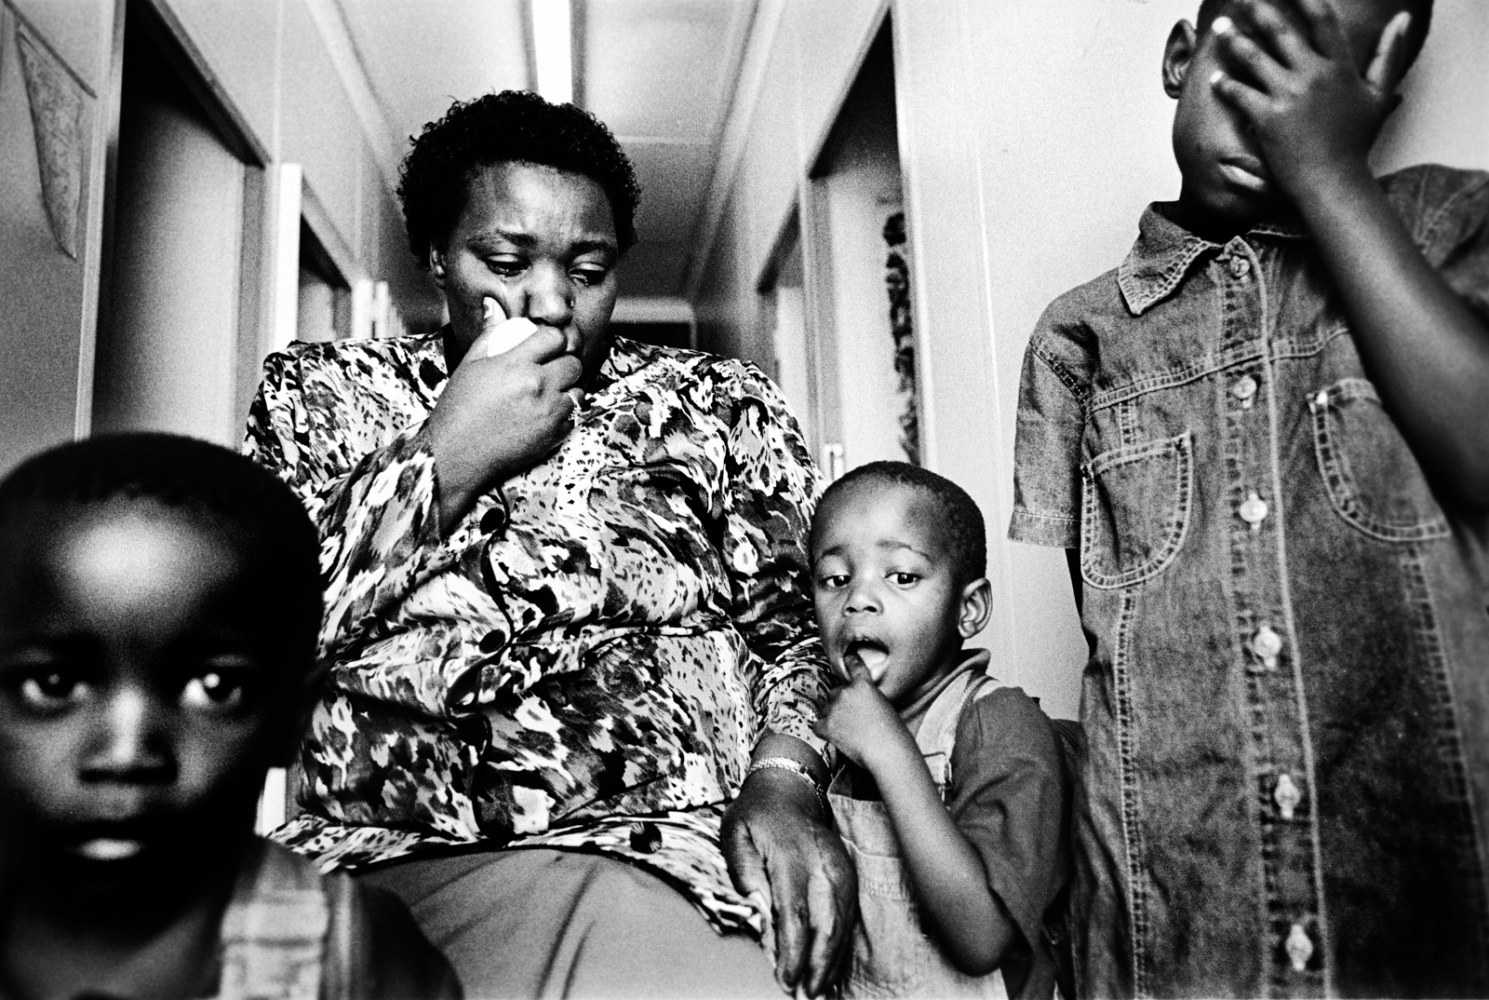 A mother cries upon learning that her two young boys have been sexually assaulted by their father. 1998